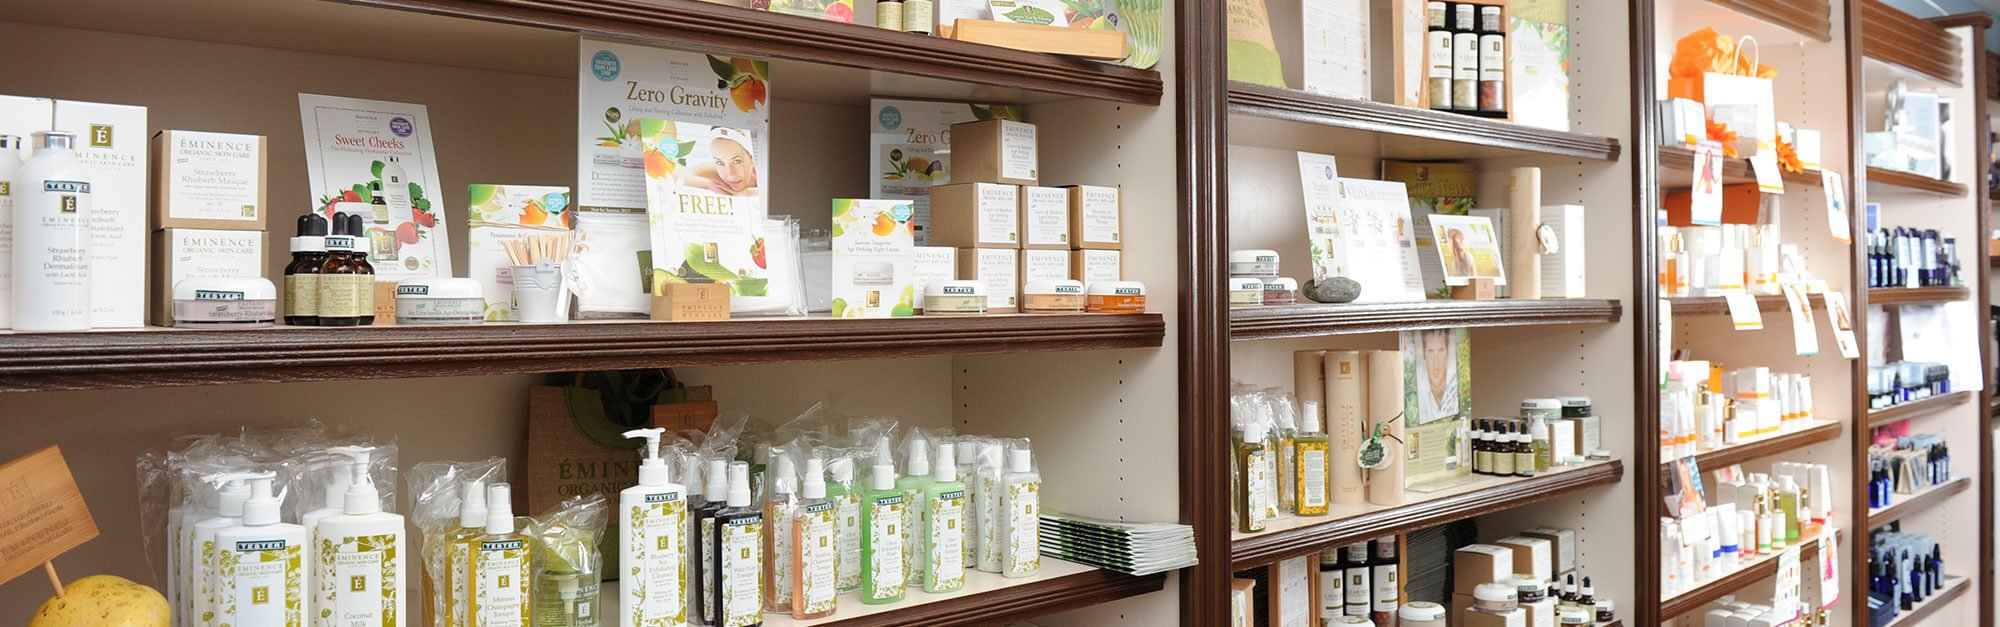 Spa Products for Sale